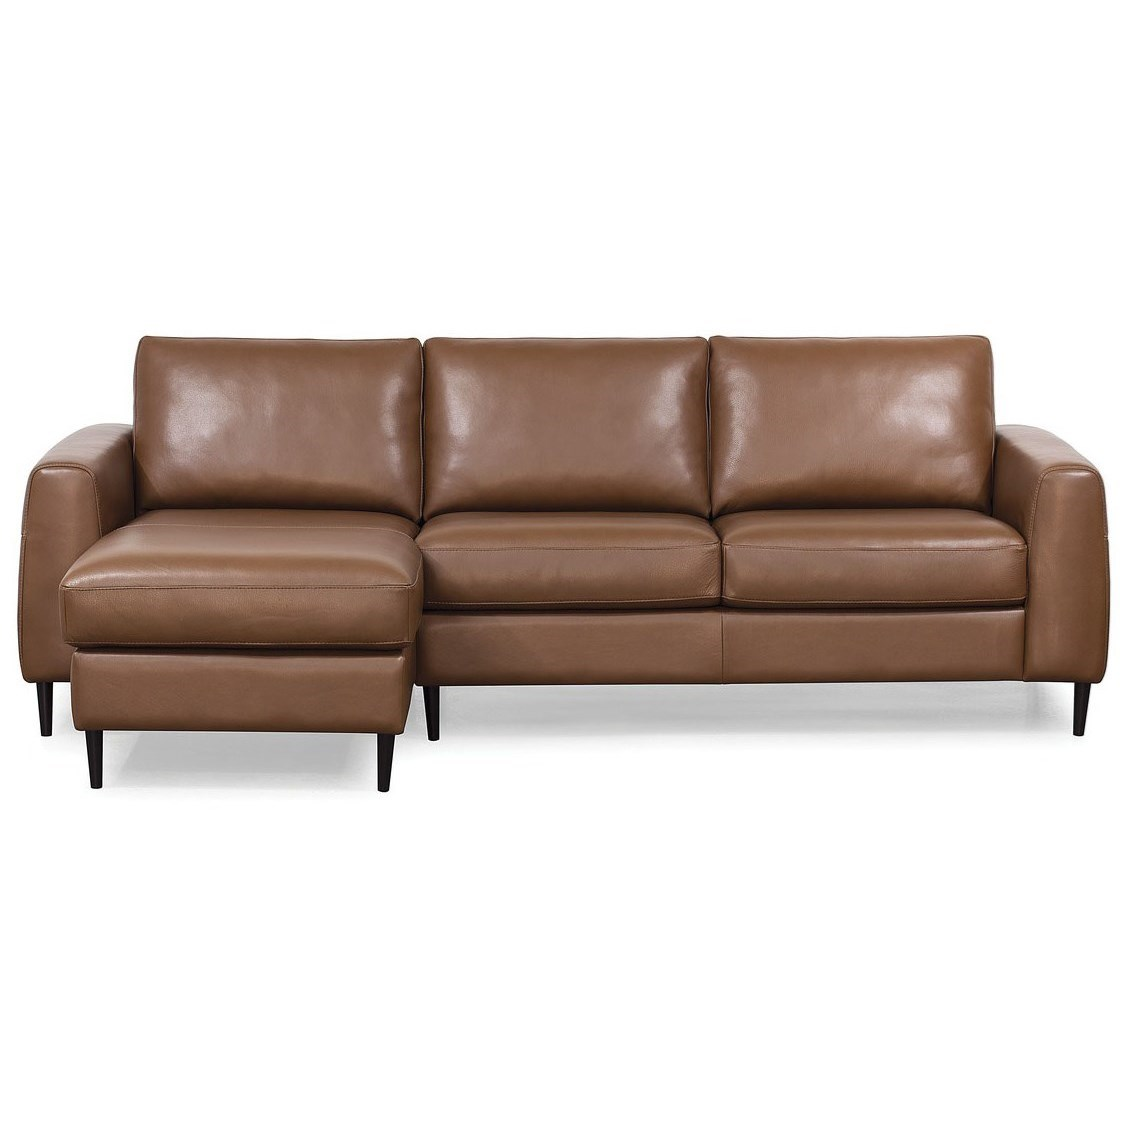 Atticus Sectional Sofa by Palliser at Esprit Decor Home Furnishings